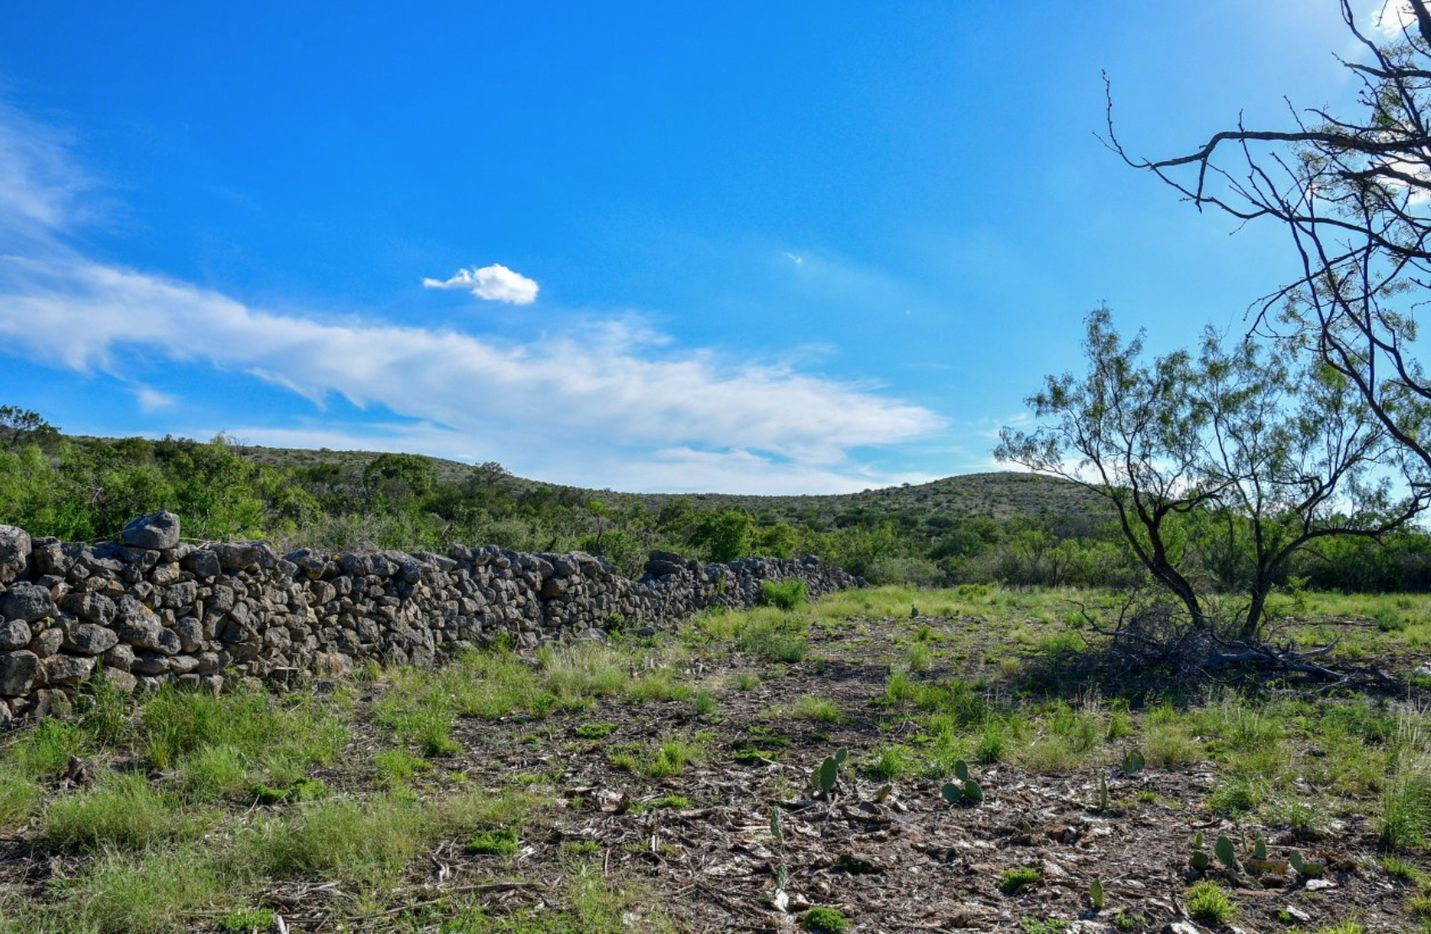 The remains of a frontier fort are on the ranch.